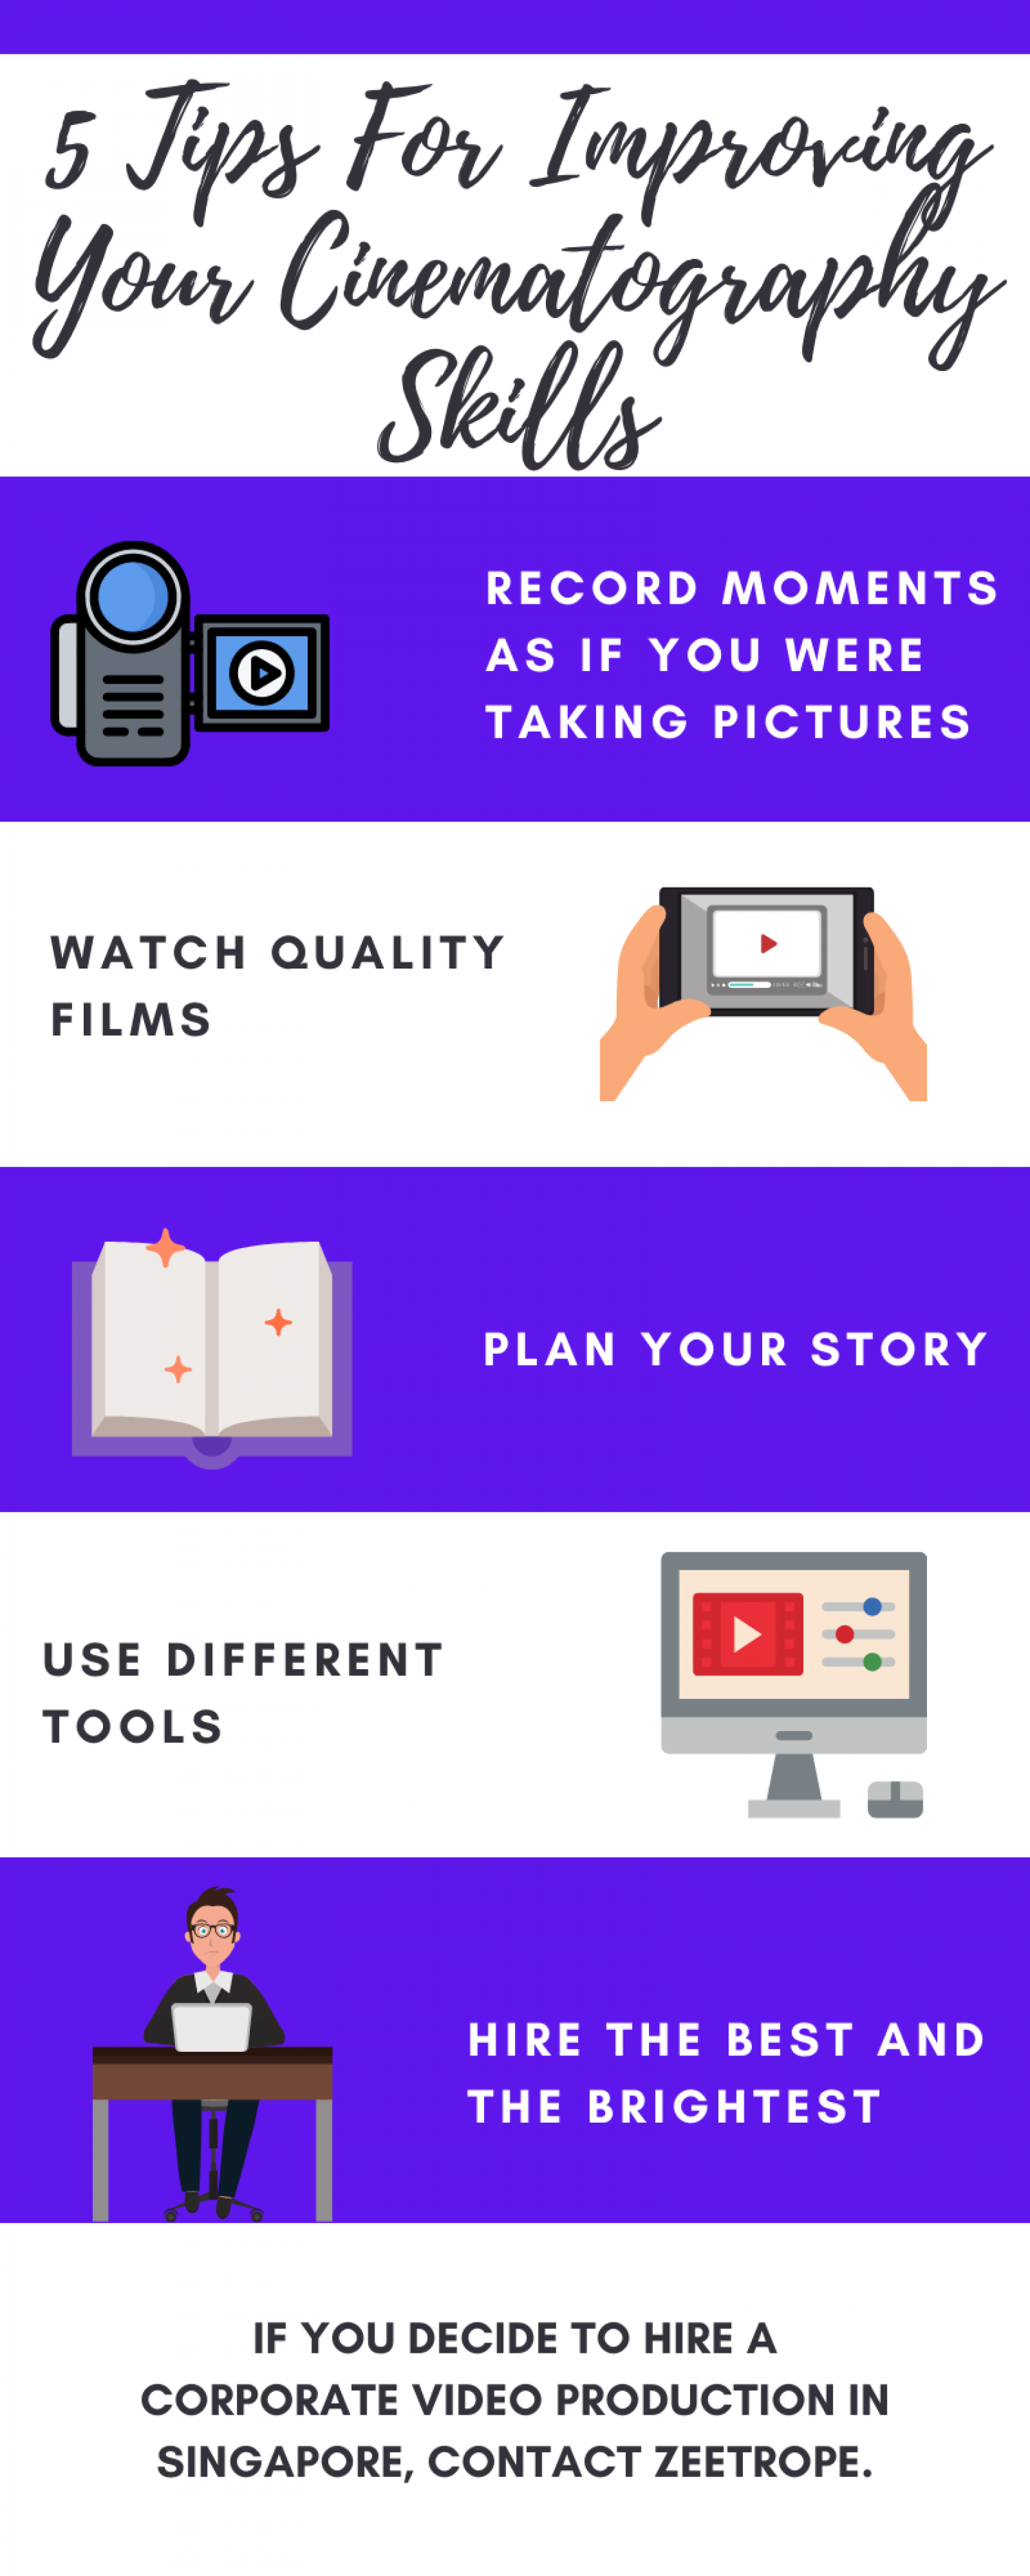 5 Tips For Improving Your Cinematography Skills Infographic